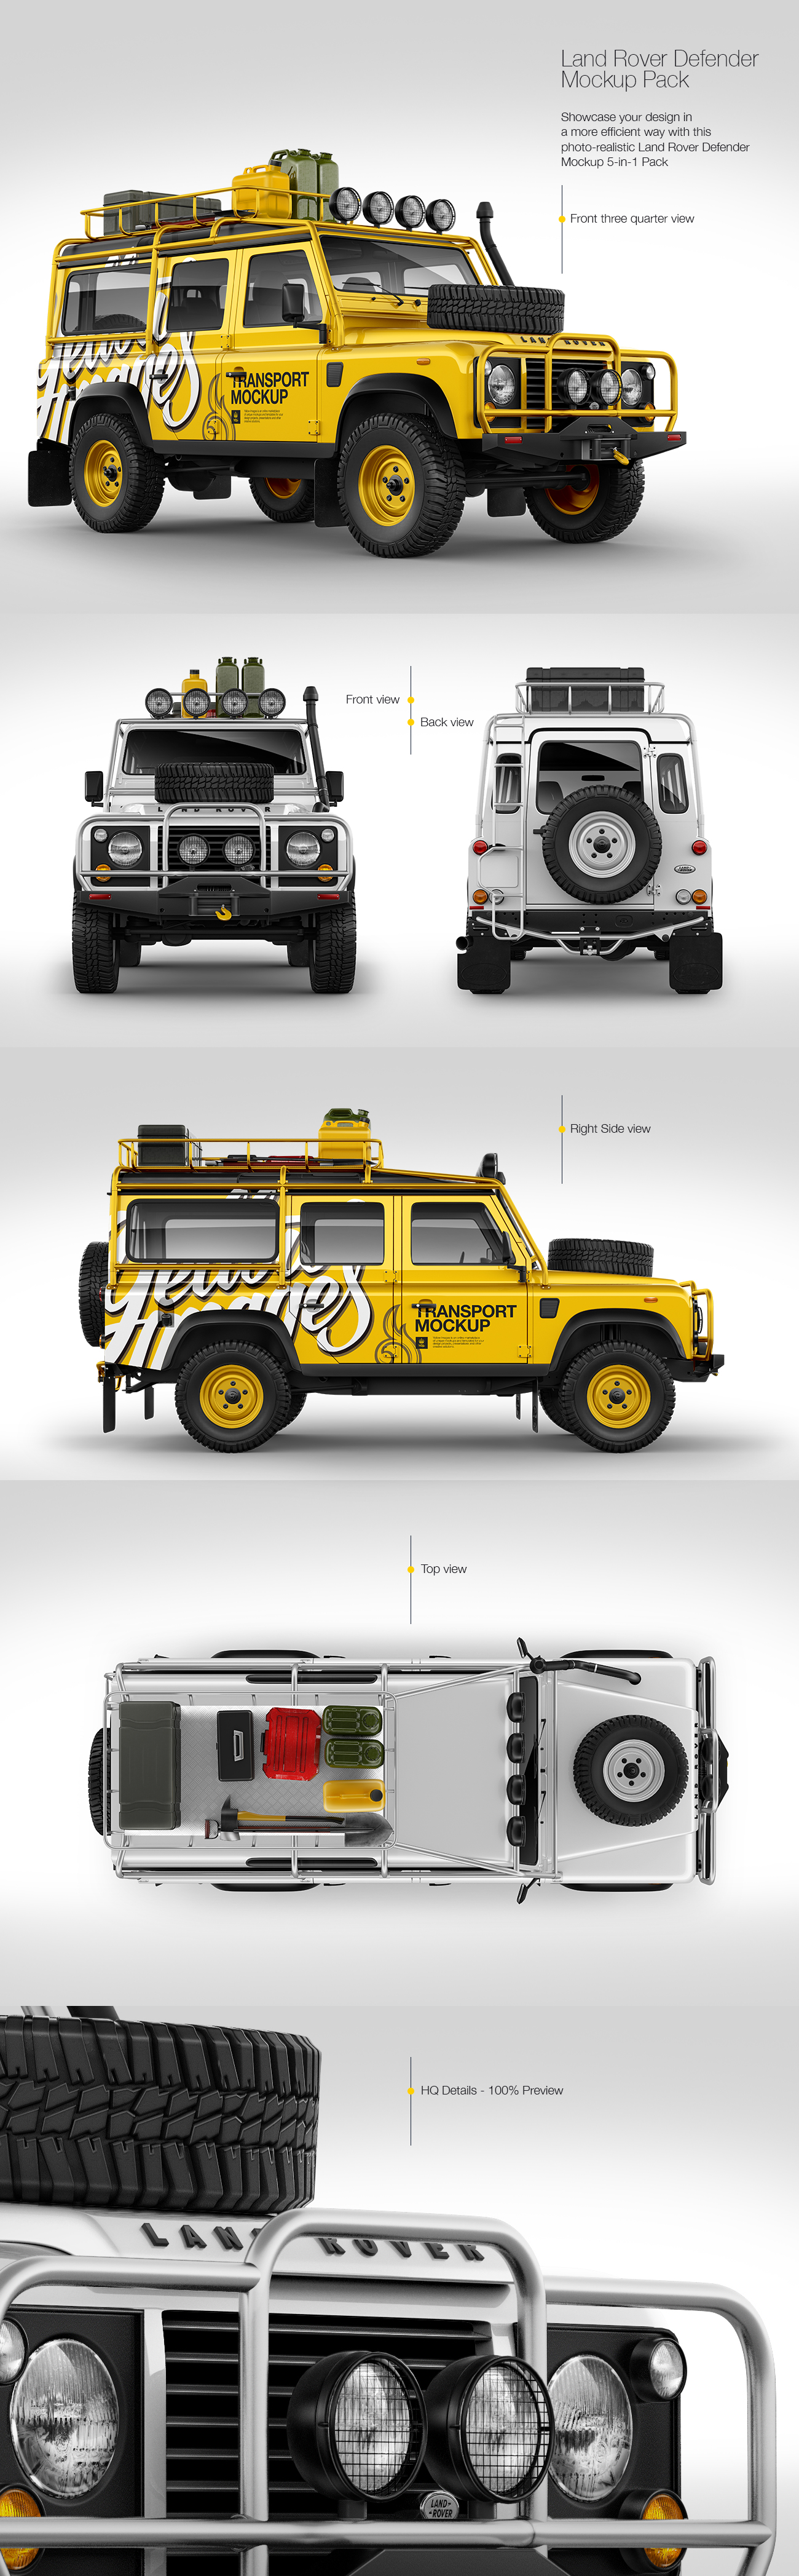 Land Rover Defender Mockup Pack